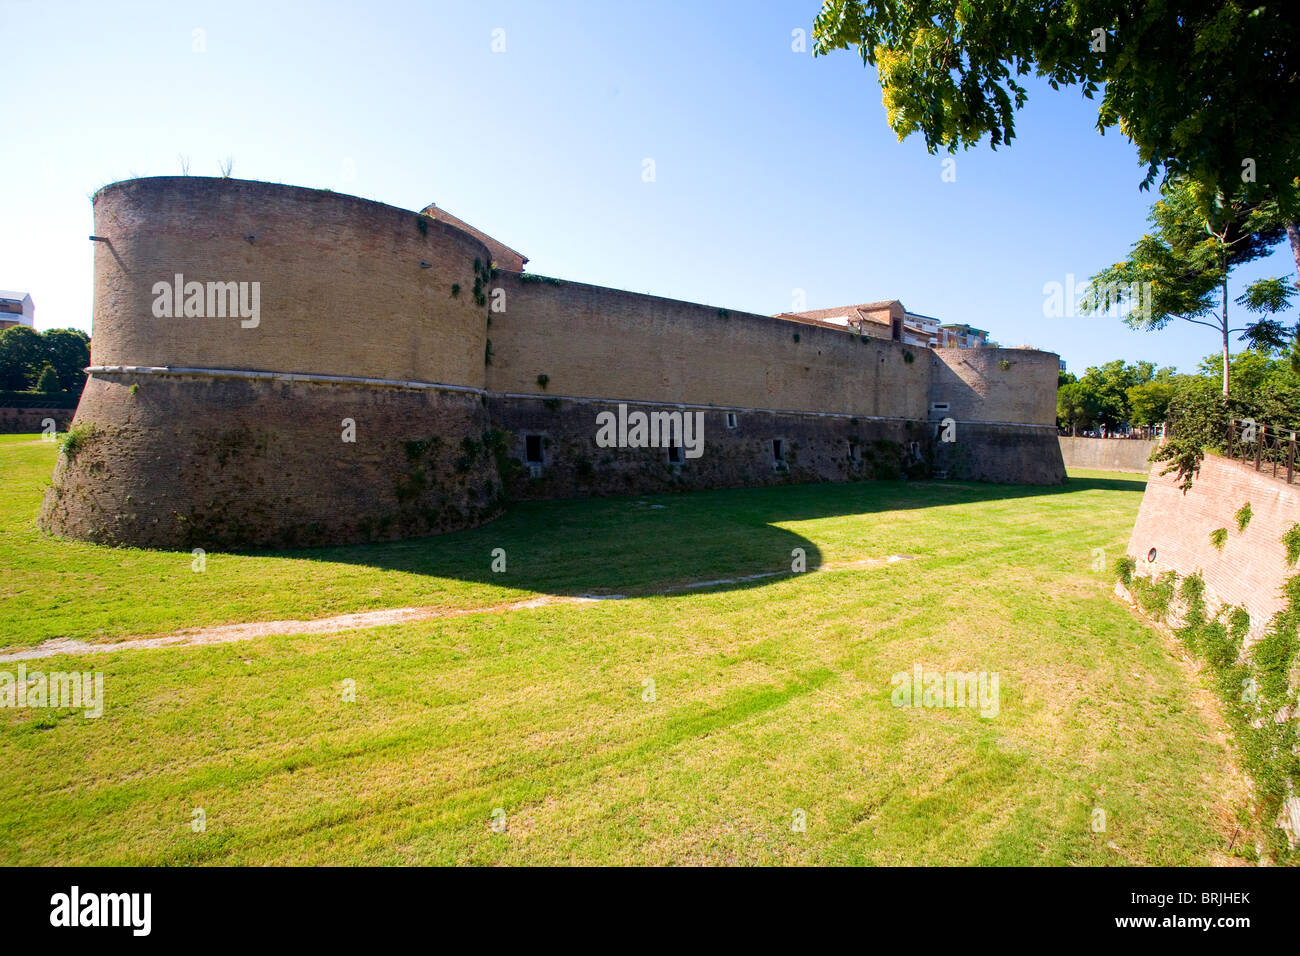 View of Rocca Costanza - a medieval fortress in Pesaro, Marche, Italy - Stock Image